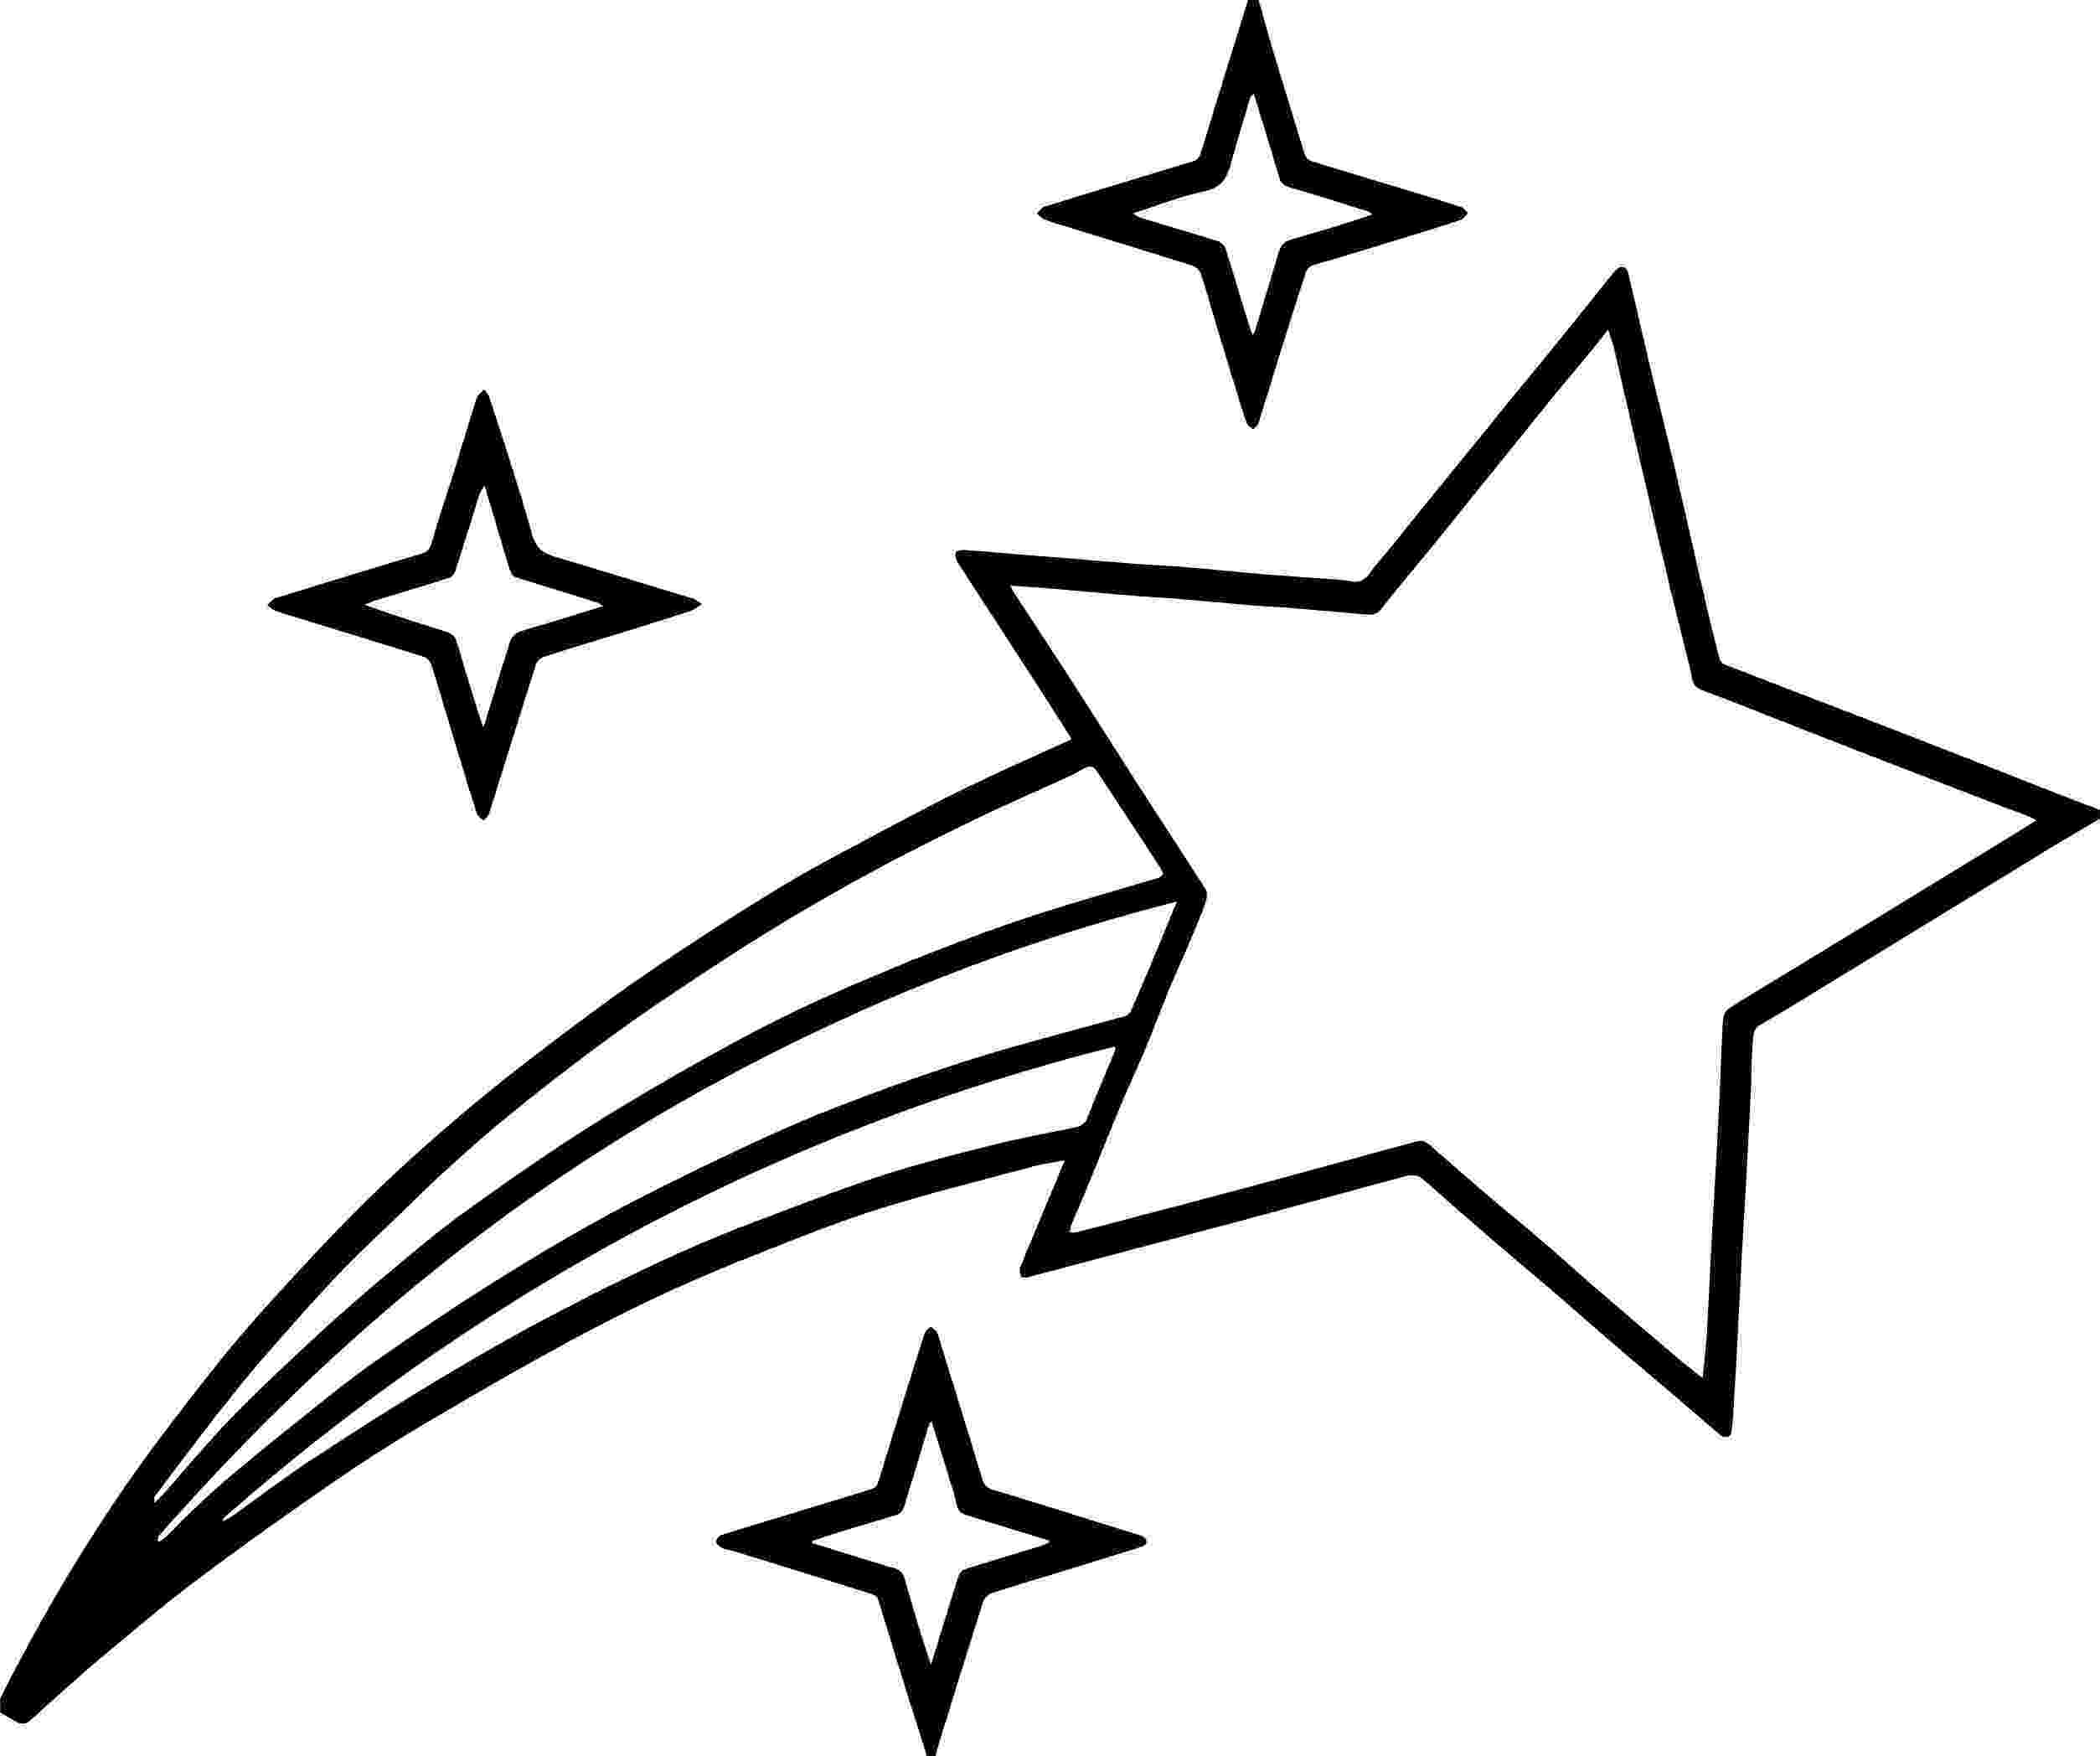 coloring stars free printable star coloring pages for kids stars coloring 1 3